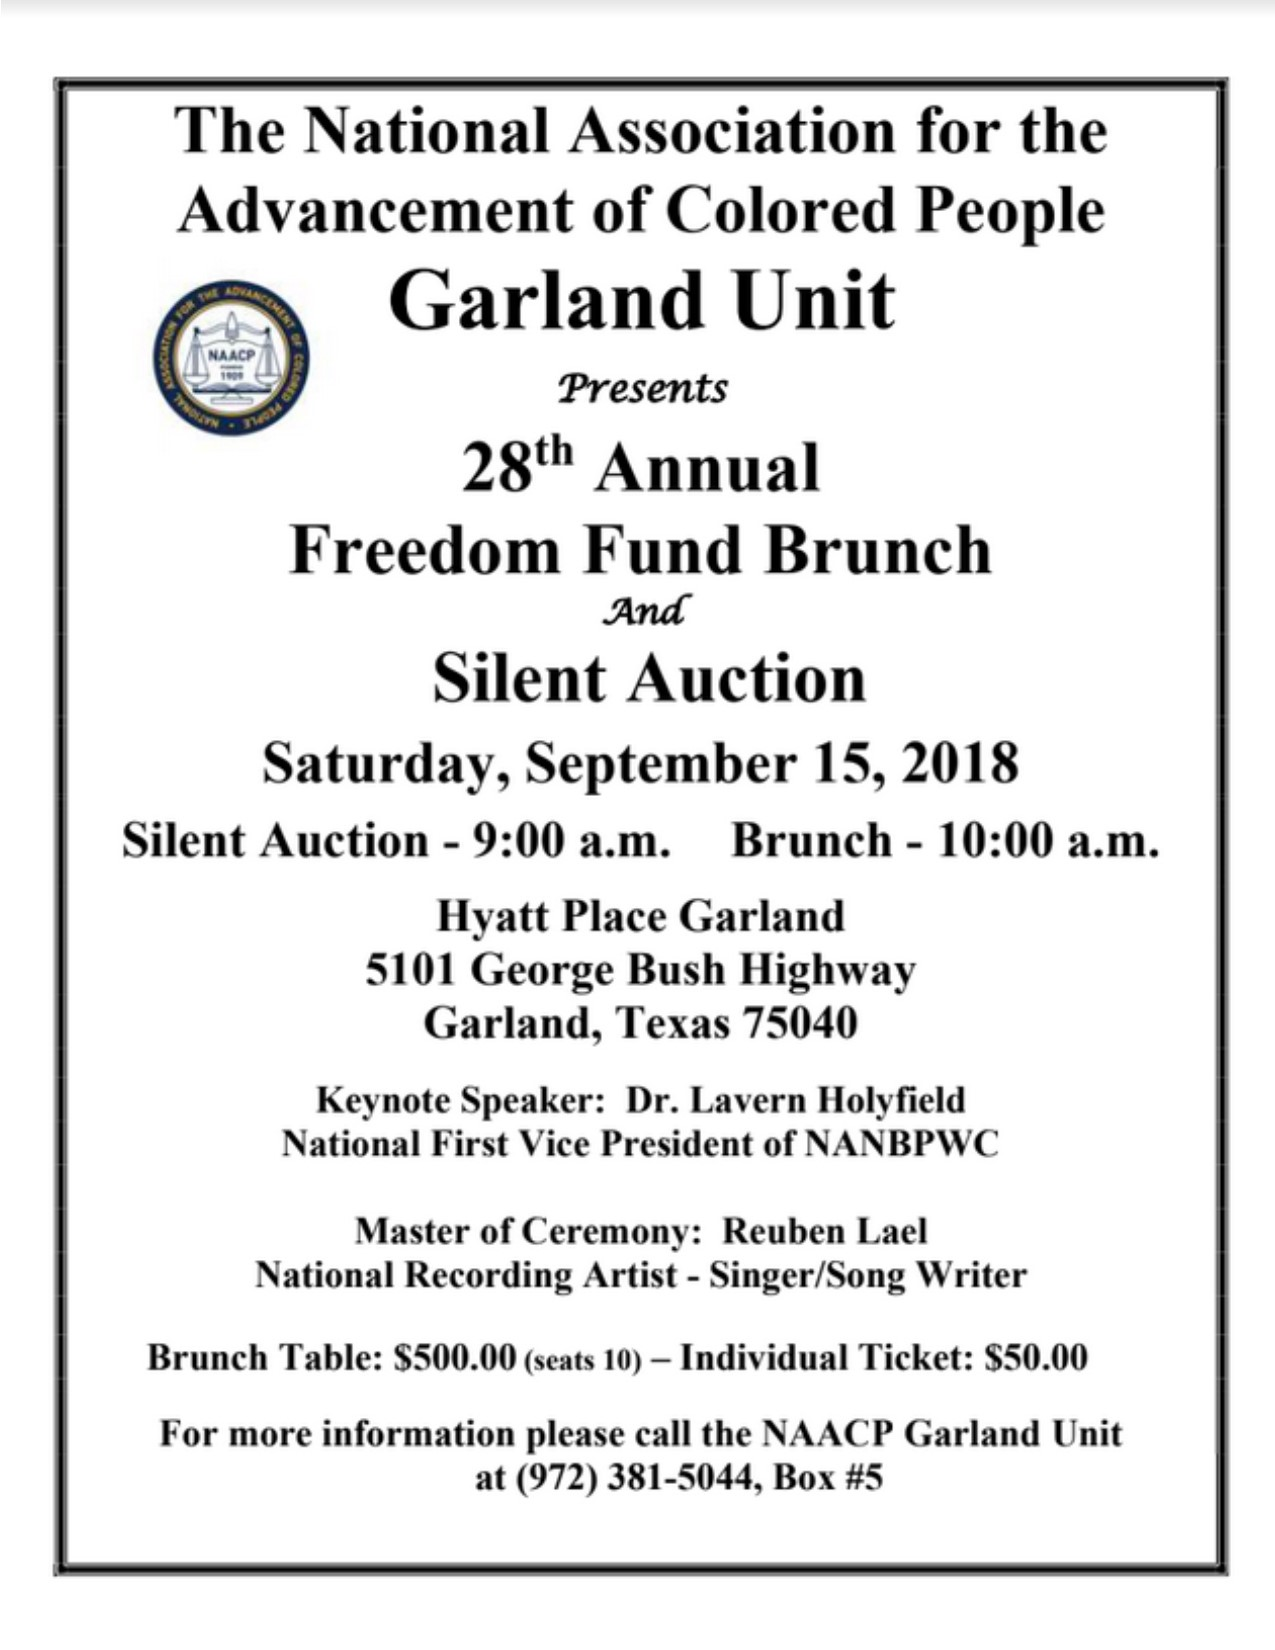 NAACP GARLAND UNIT'S FREEDOM FUND BRUNCH AND SILENT AUCTION